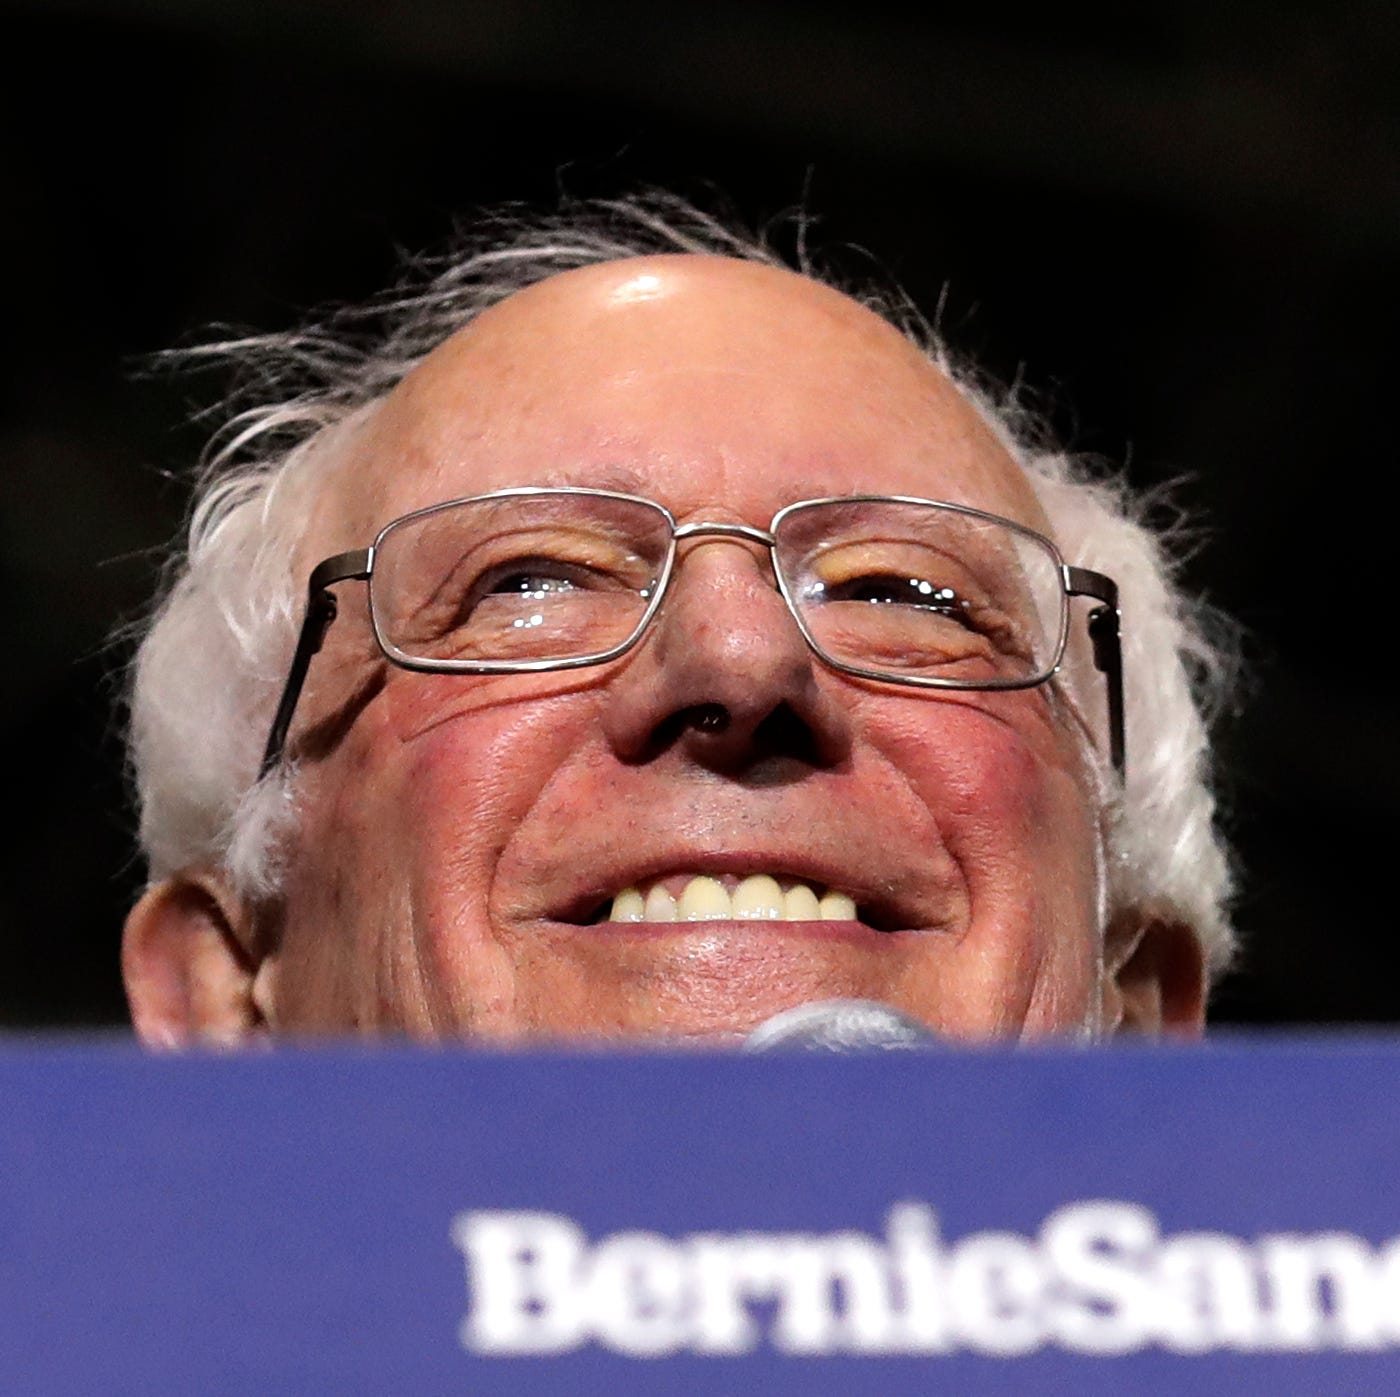 Bernie Sanders signs pledge: 'I am a member of the Democratic Party'